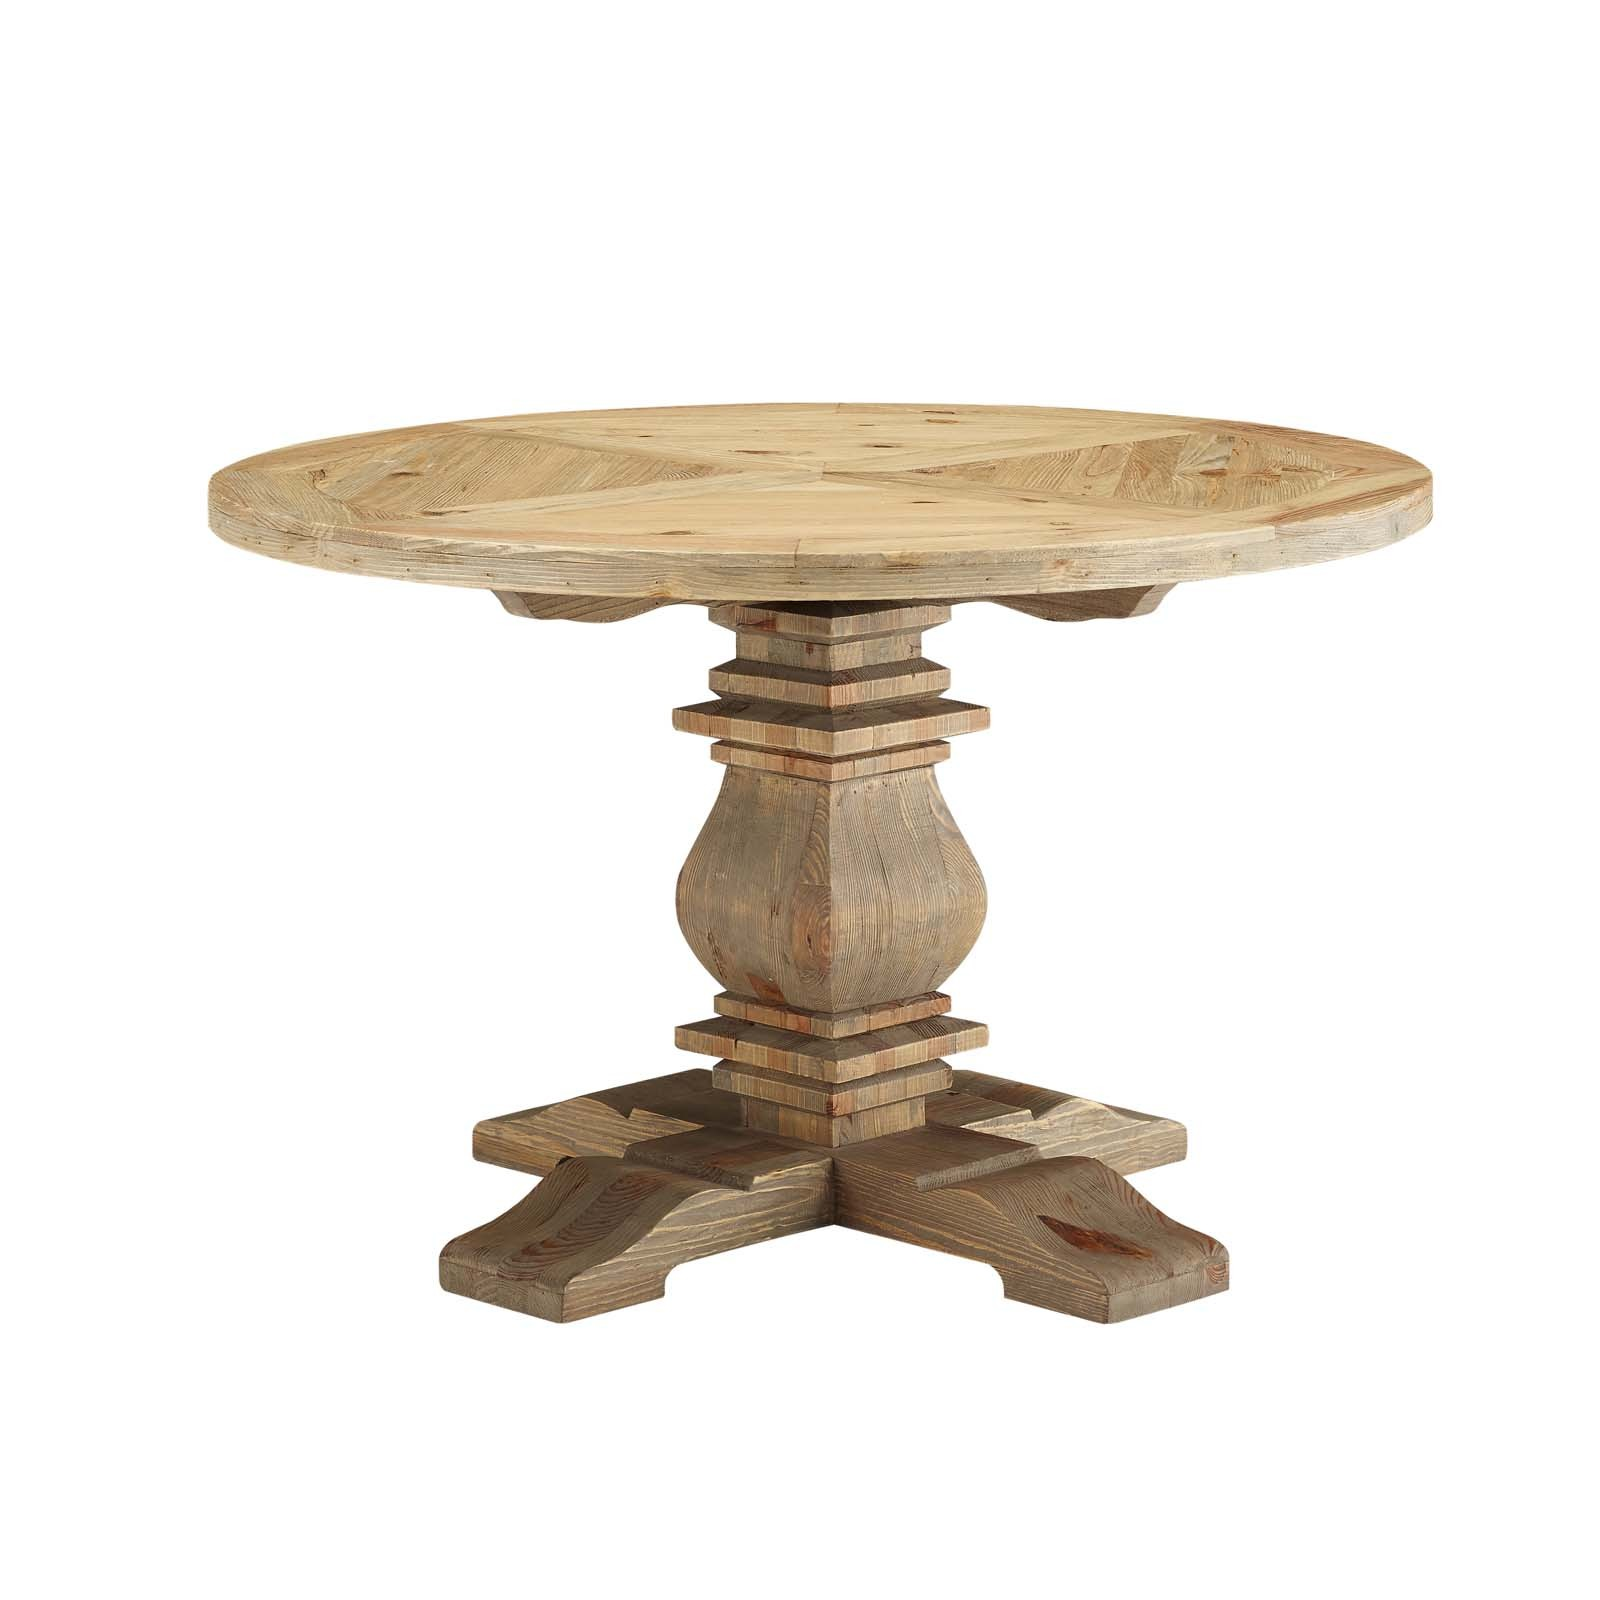 "Column 47"" Round Pine Wood Dining Table in Brown"